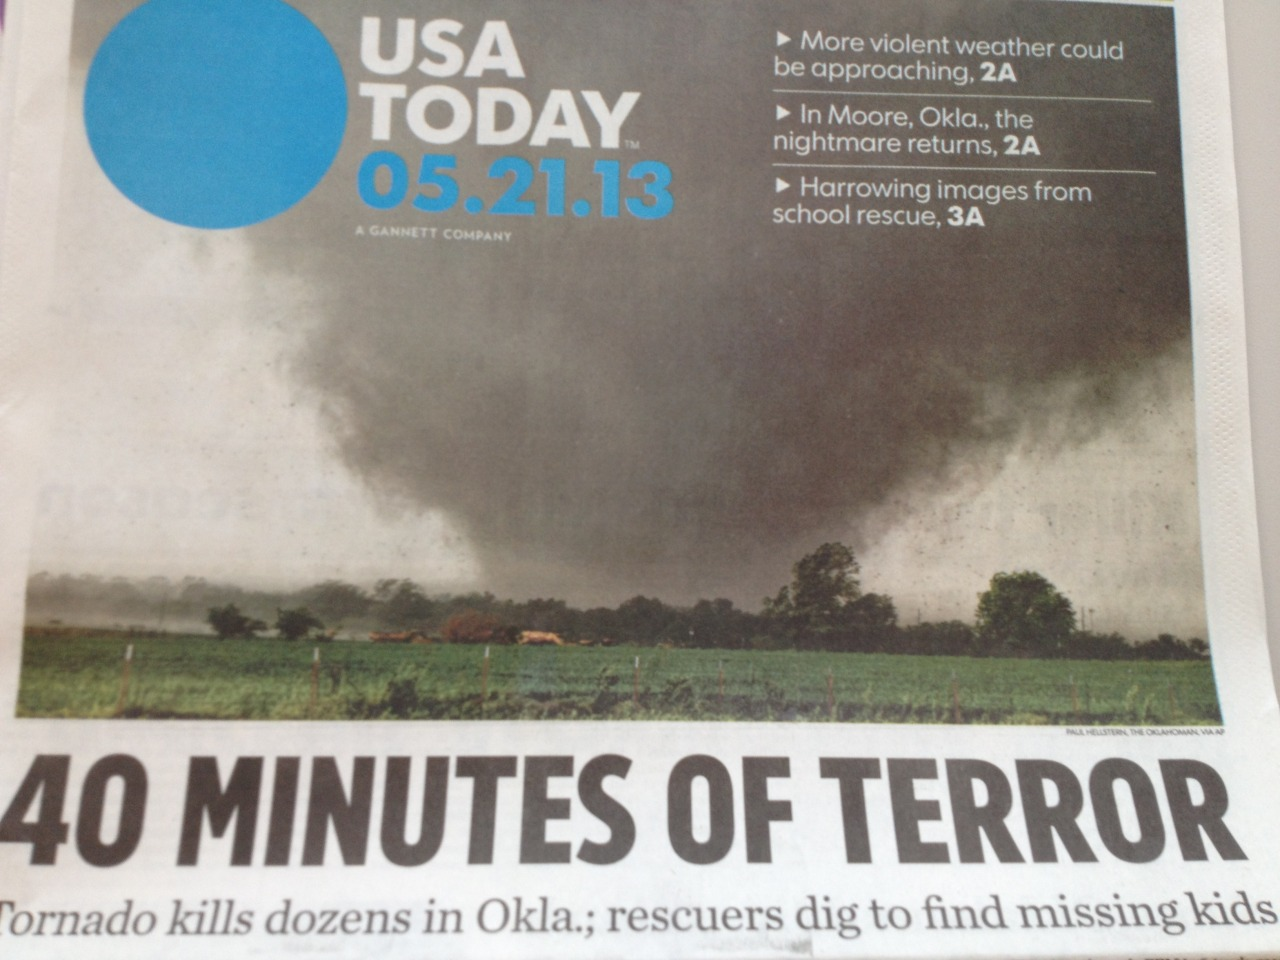 Front page of this morning's USA TODAY